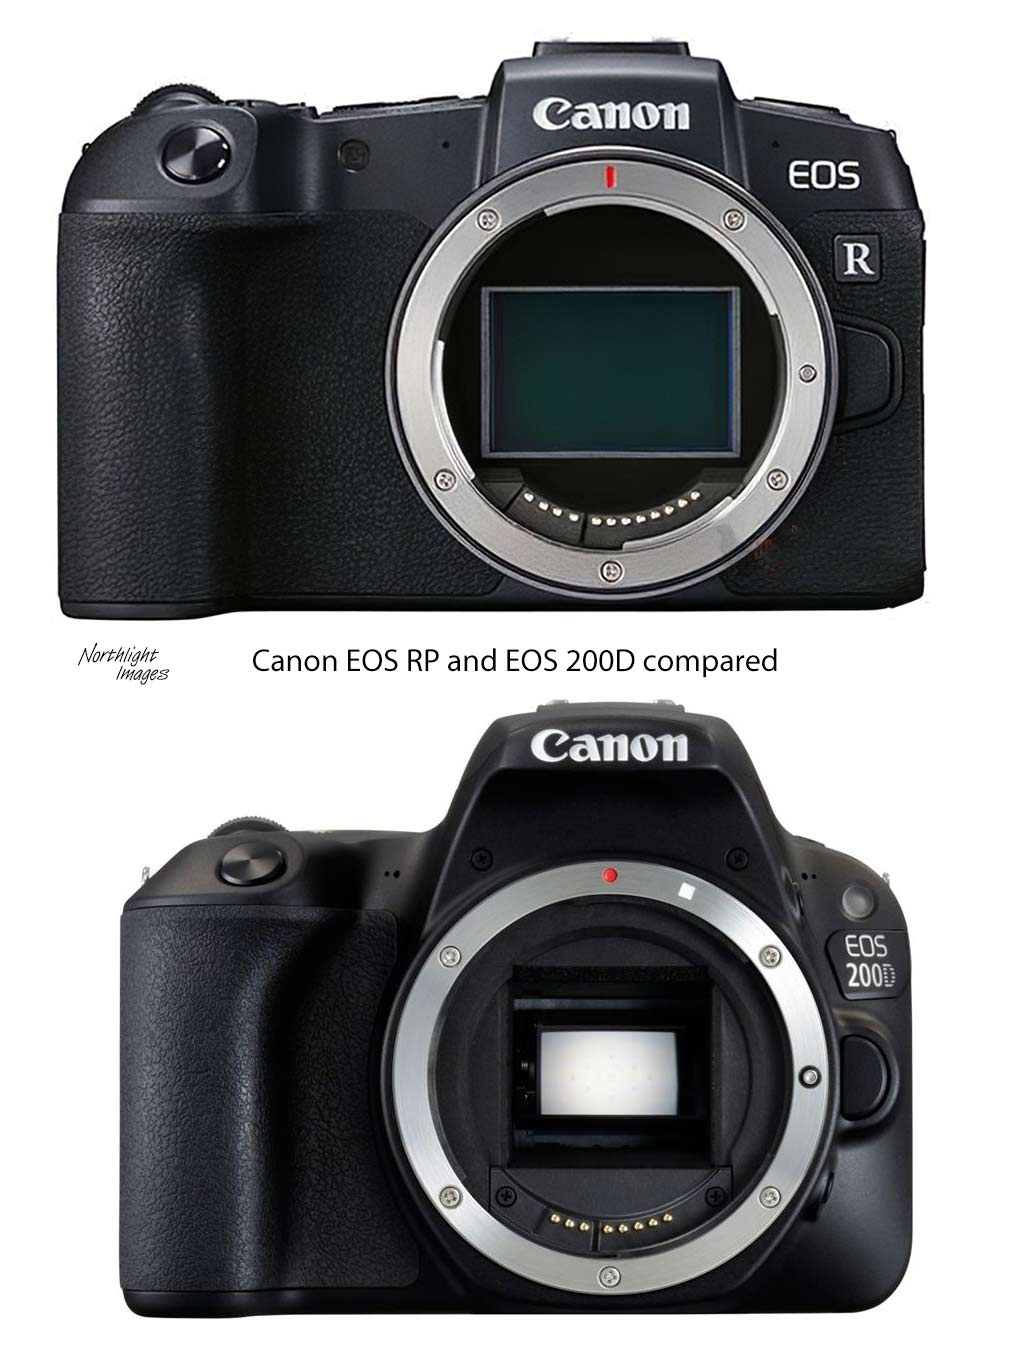 Canon camera rumours and camera technology information